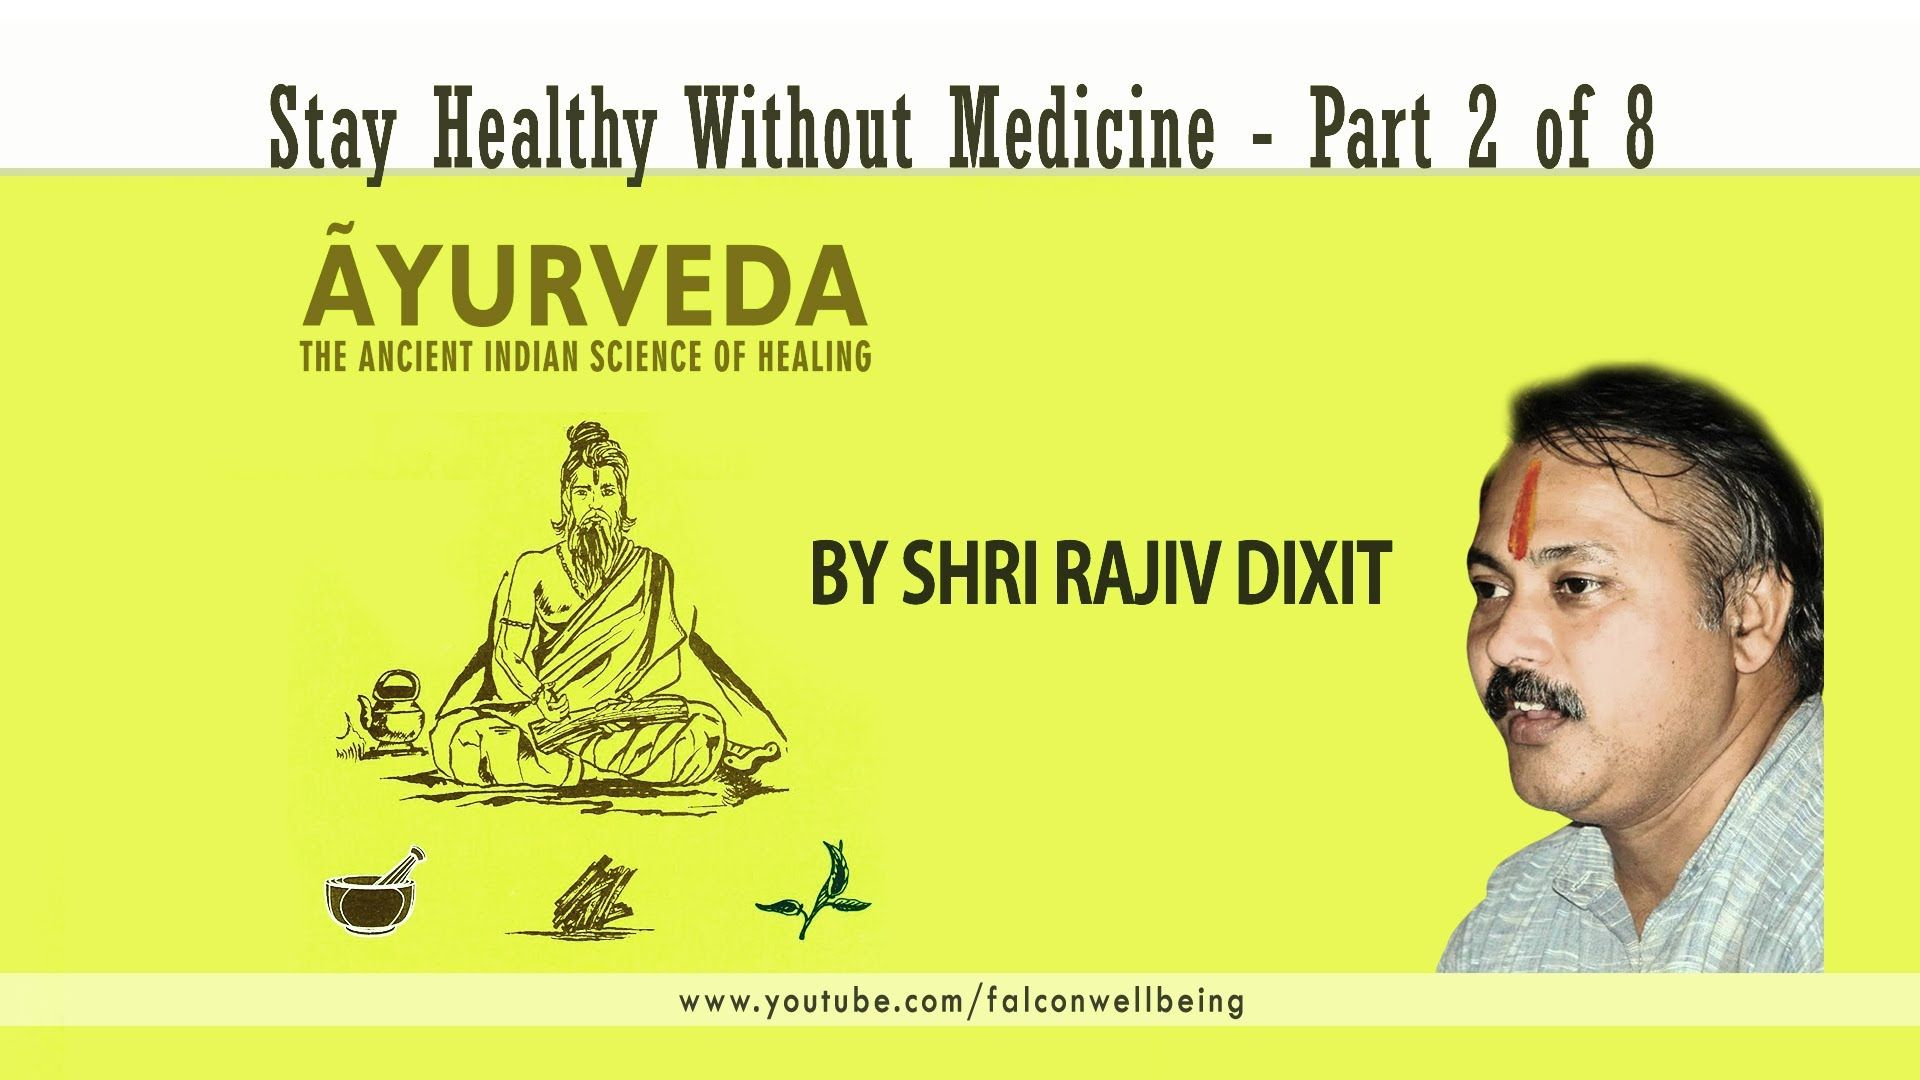 Rajiv Dixit - Stay Happy Without Medicine - Part 2 of 8